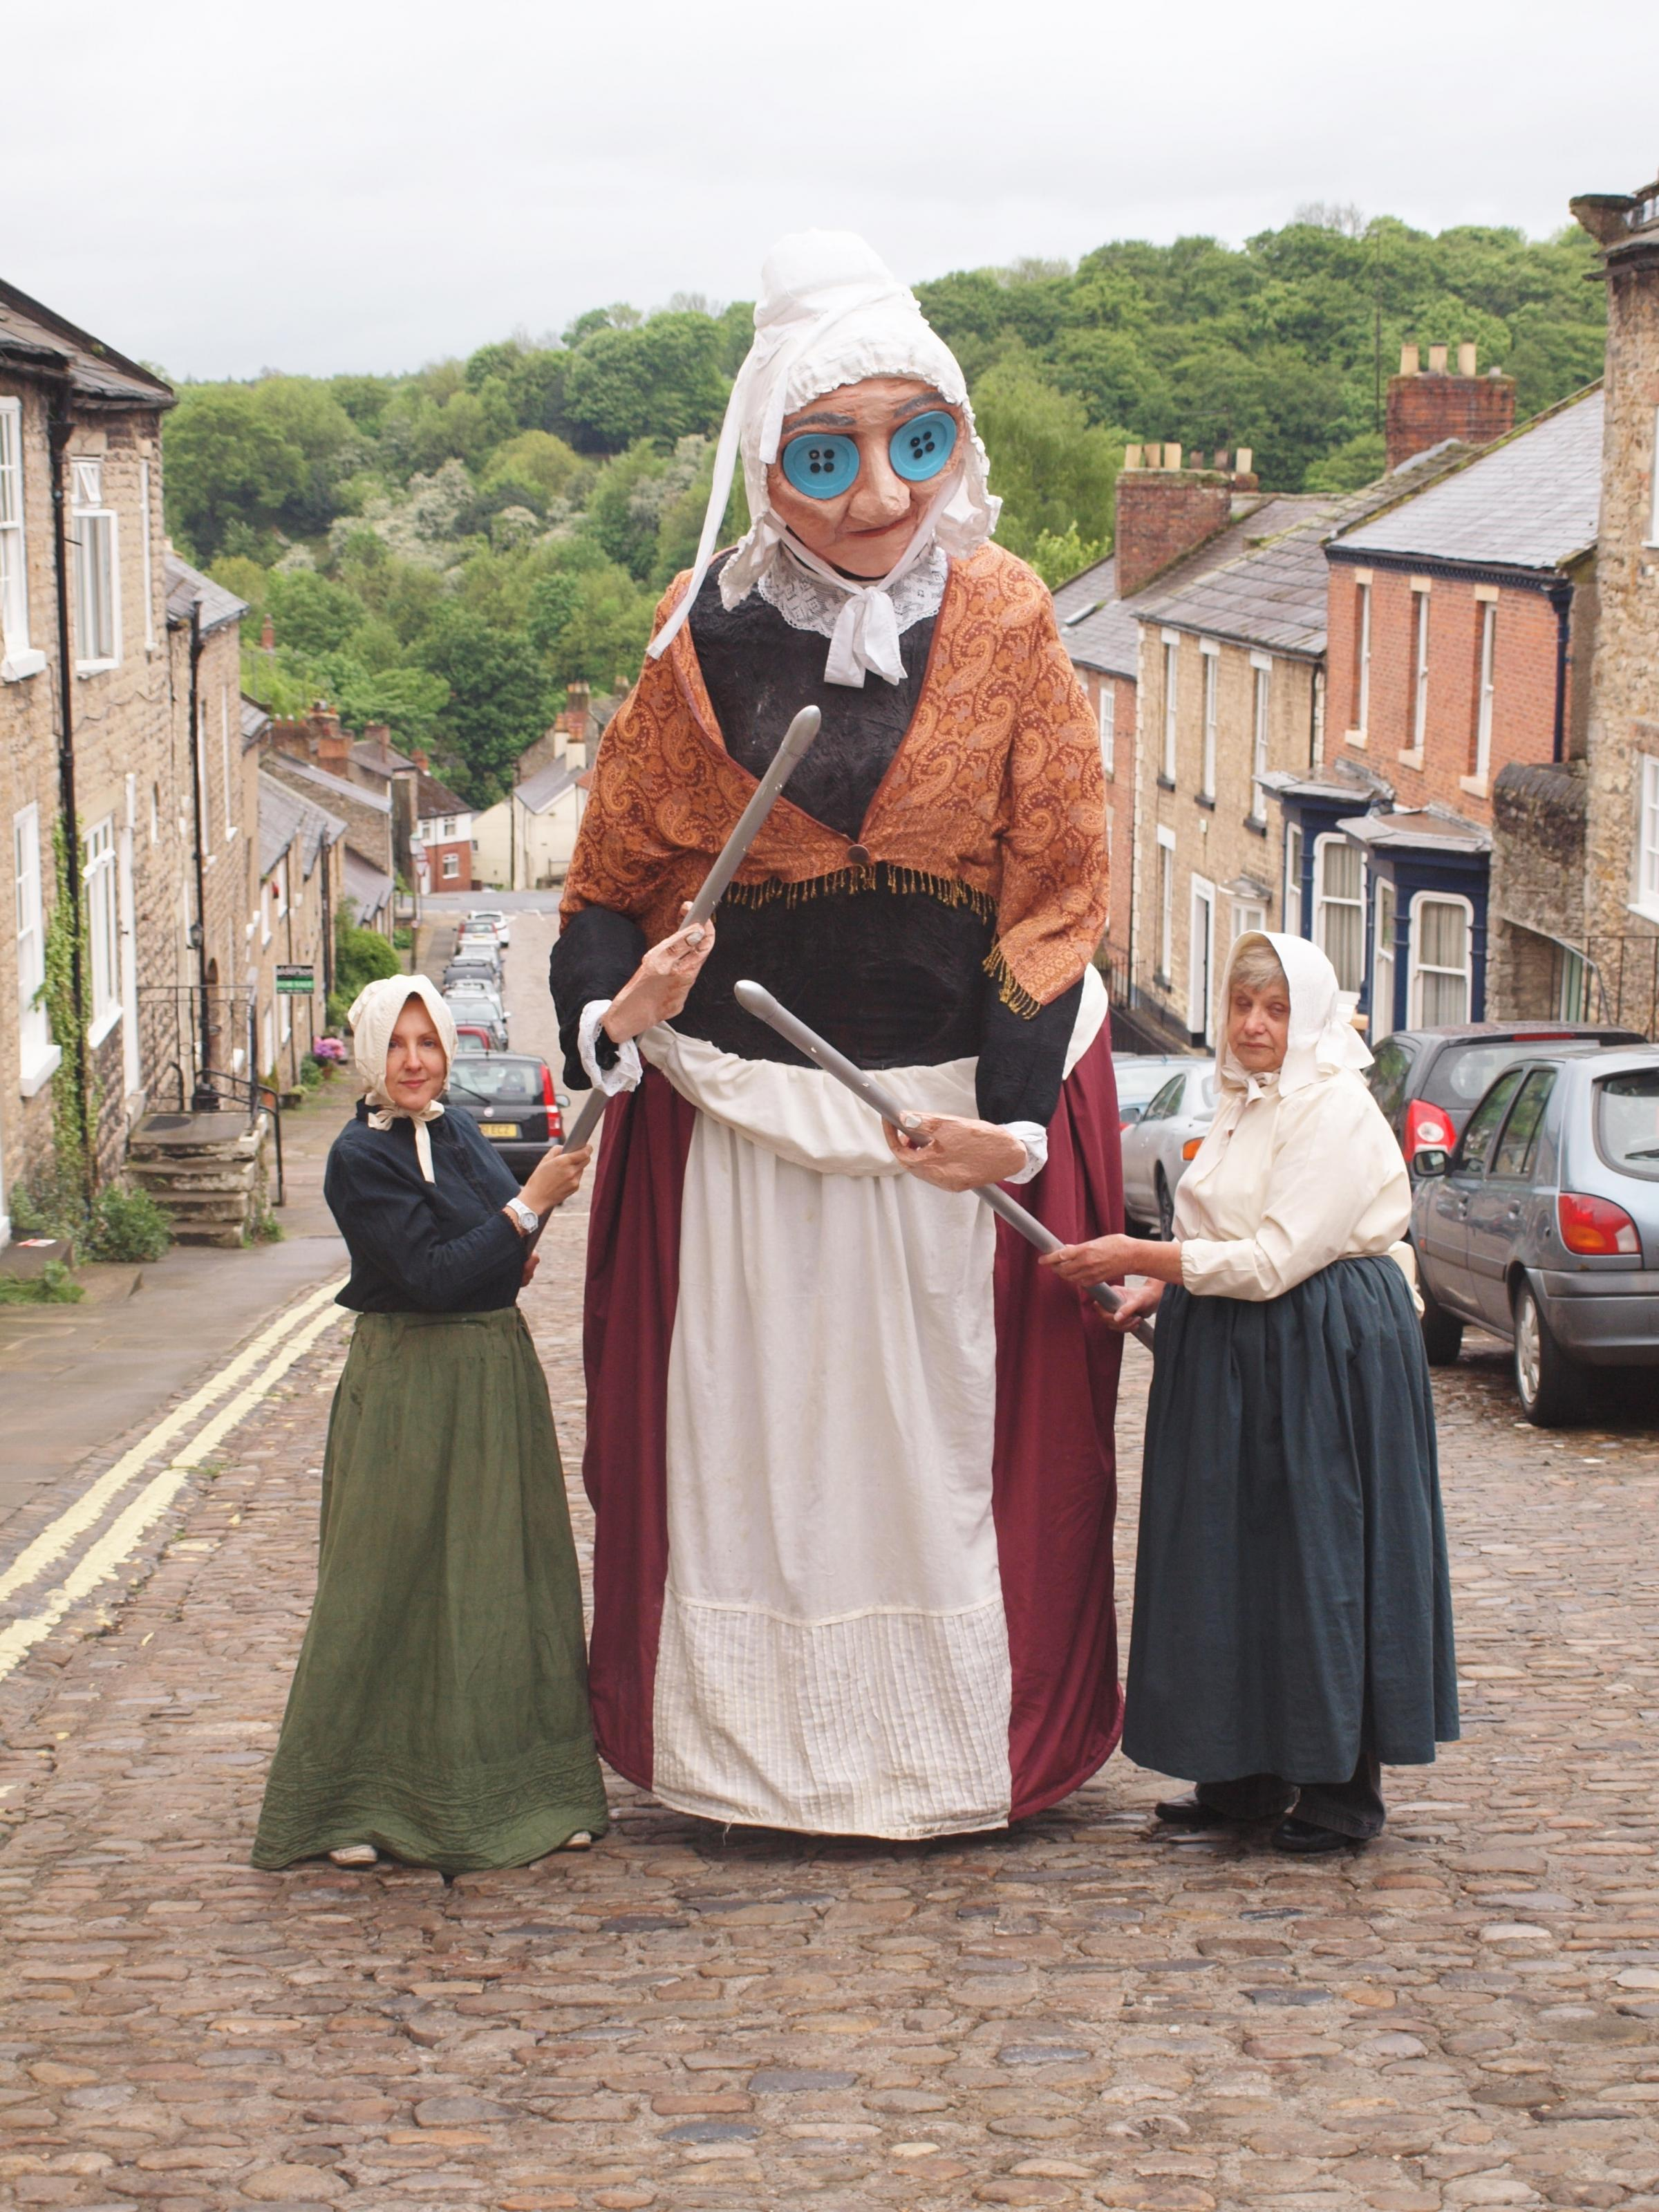 GIANT KNITTER: Community play Blame it on Bartle! will be staged across Richmondshire in July. From left: Susan Jinks, Margaret Cowan (inside puppet) and Linda Baldry. Credit Beki Harrison.